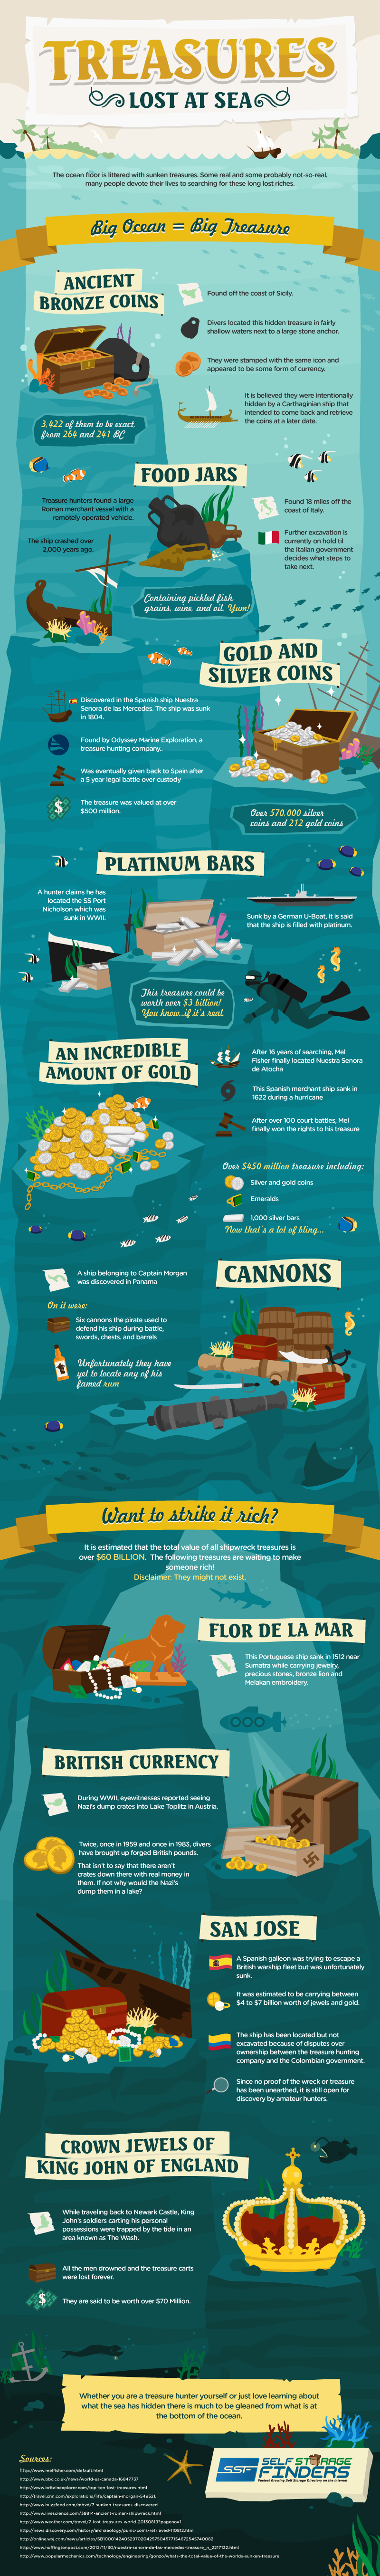 Treasures-Lost-At-Sea-infographic